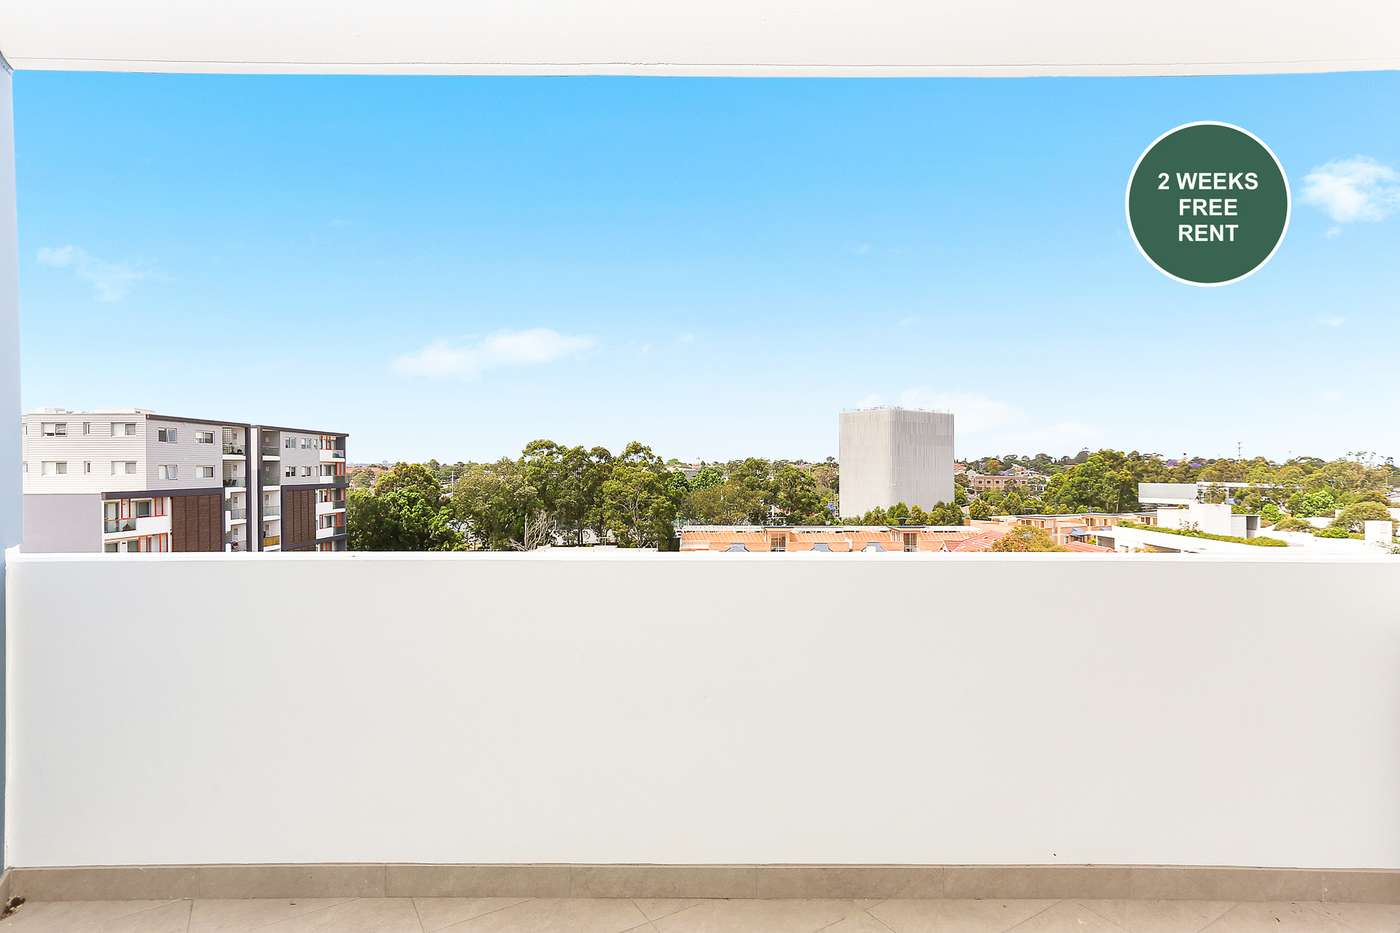 Main view of Homely apartment listing, 104/89 Park Road, Homebush, NSW 2140